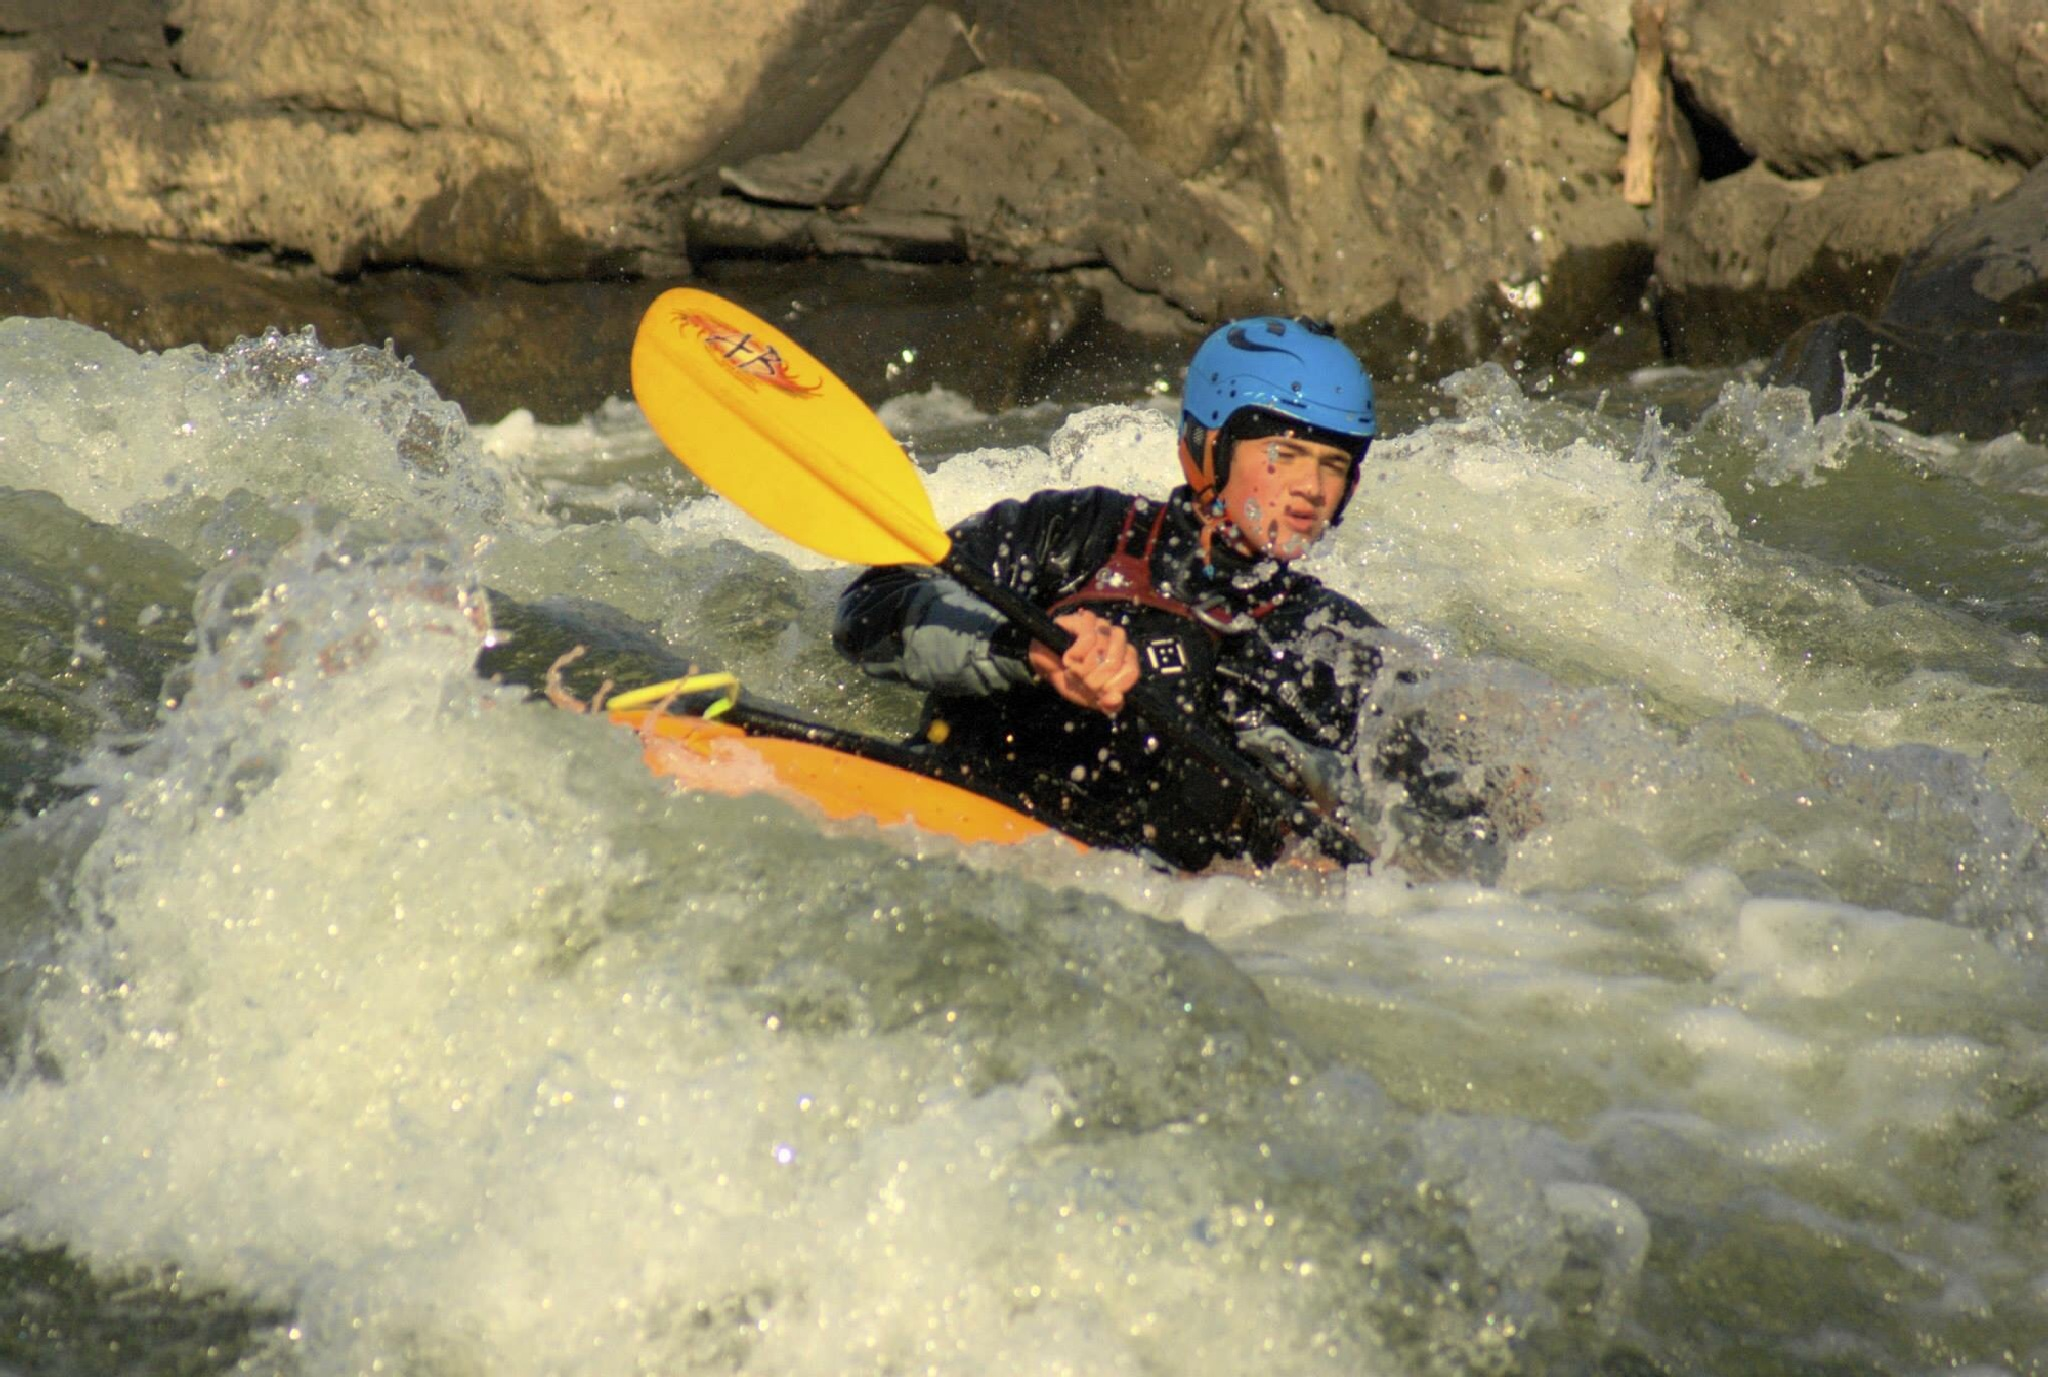 Kayaker at Great Falls by Werner R. Ennesser